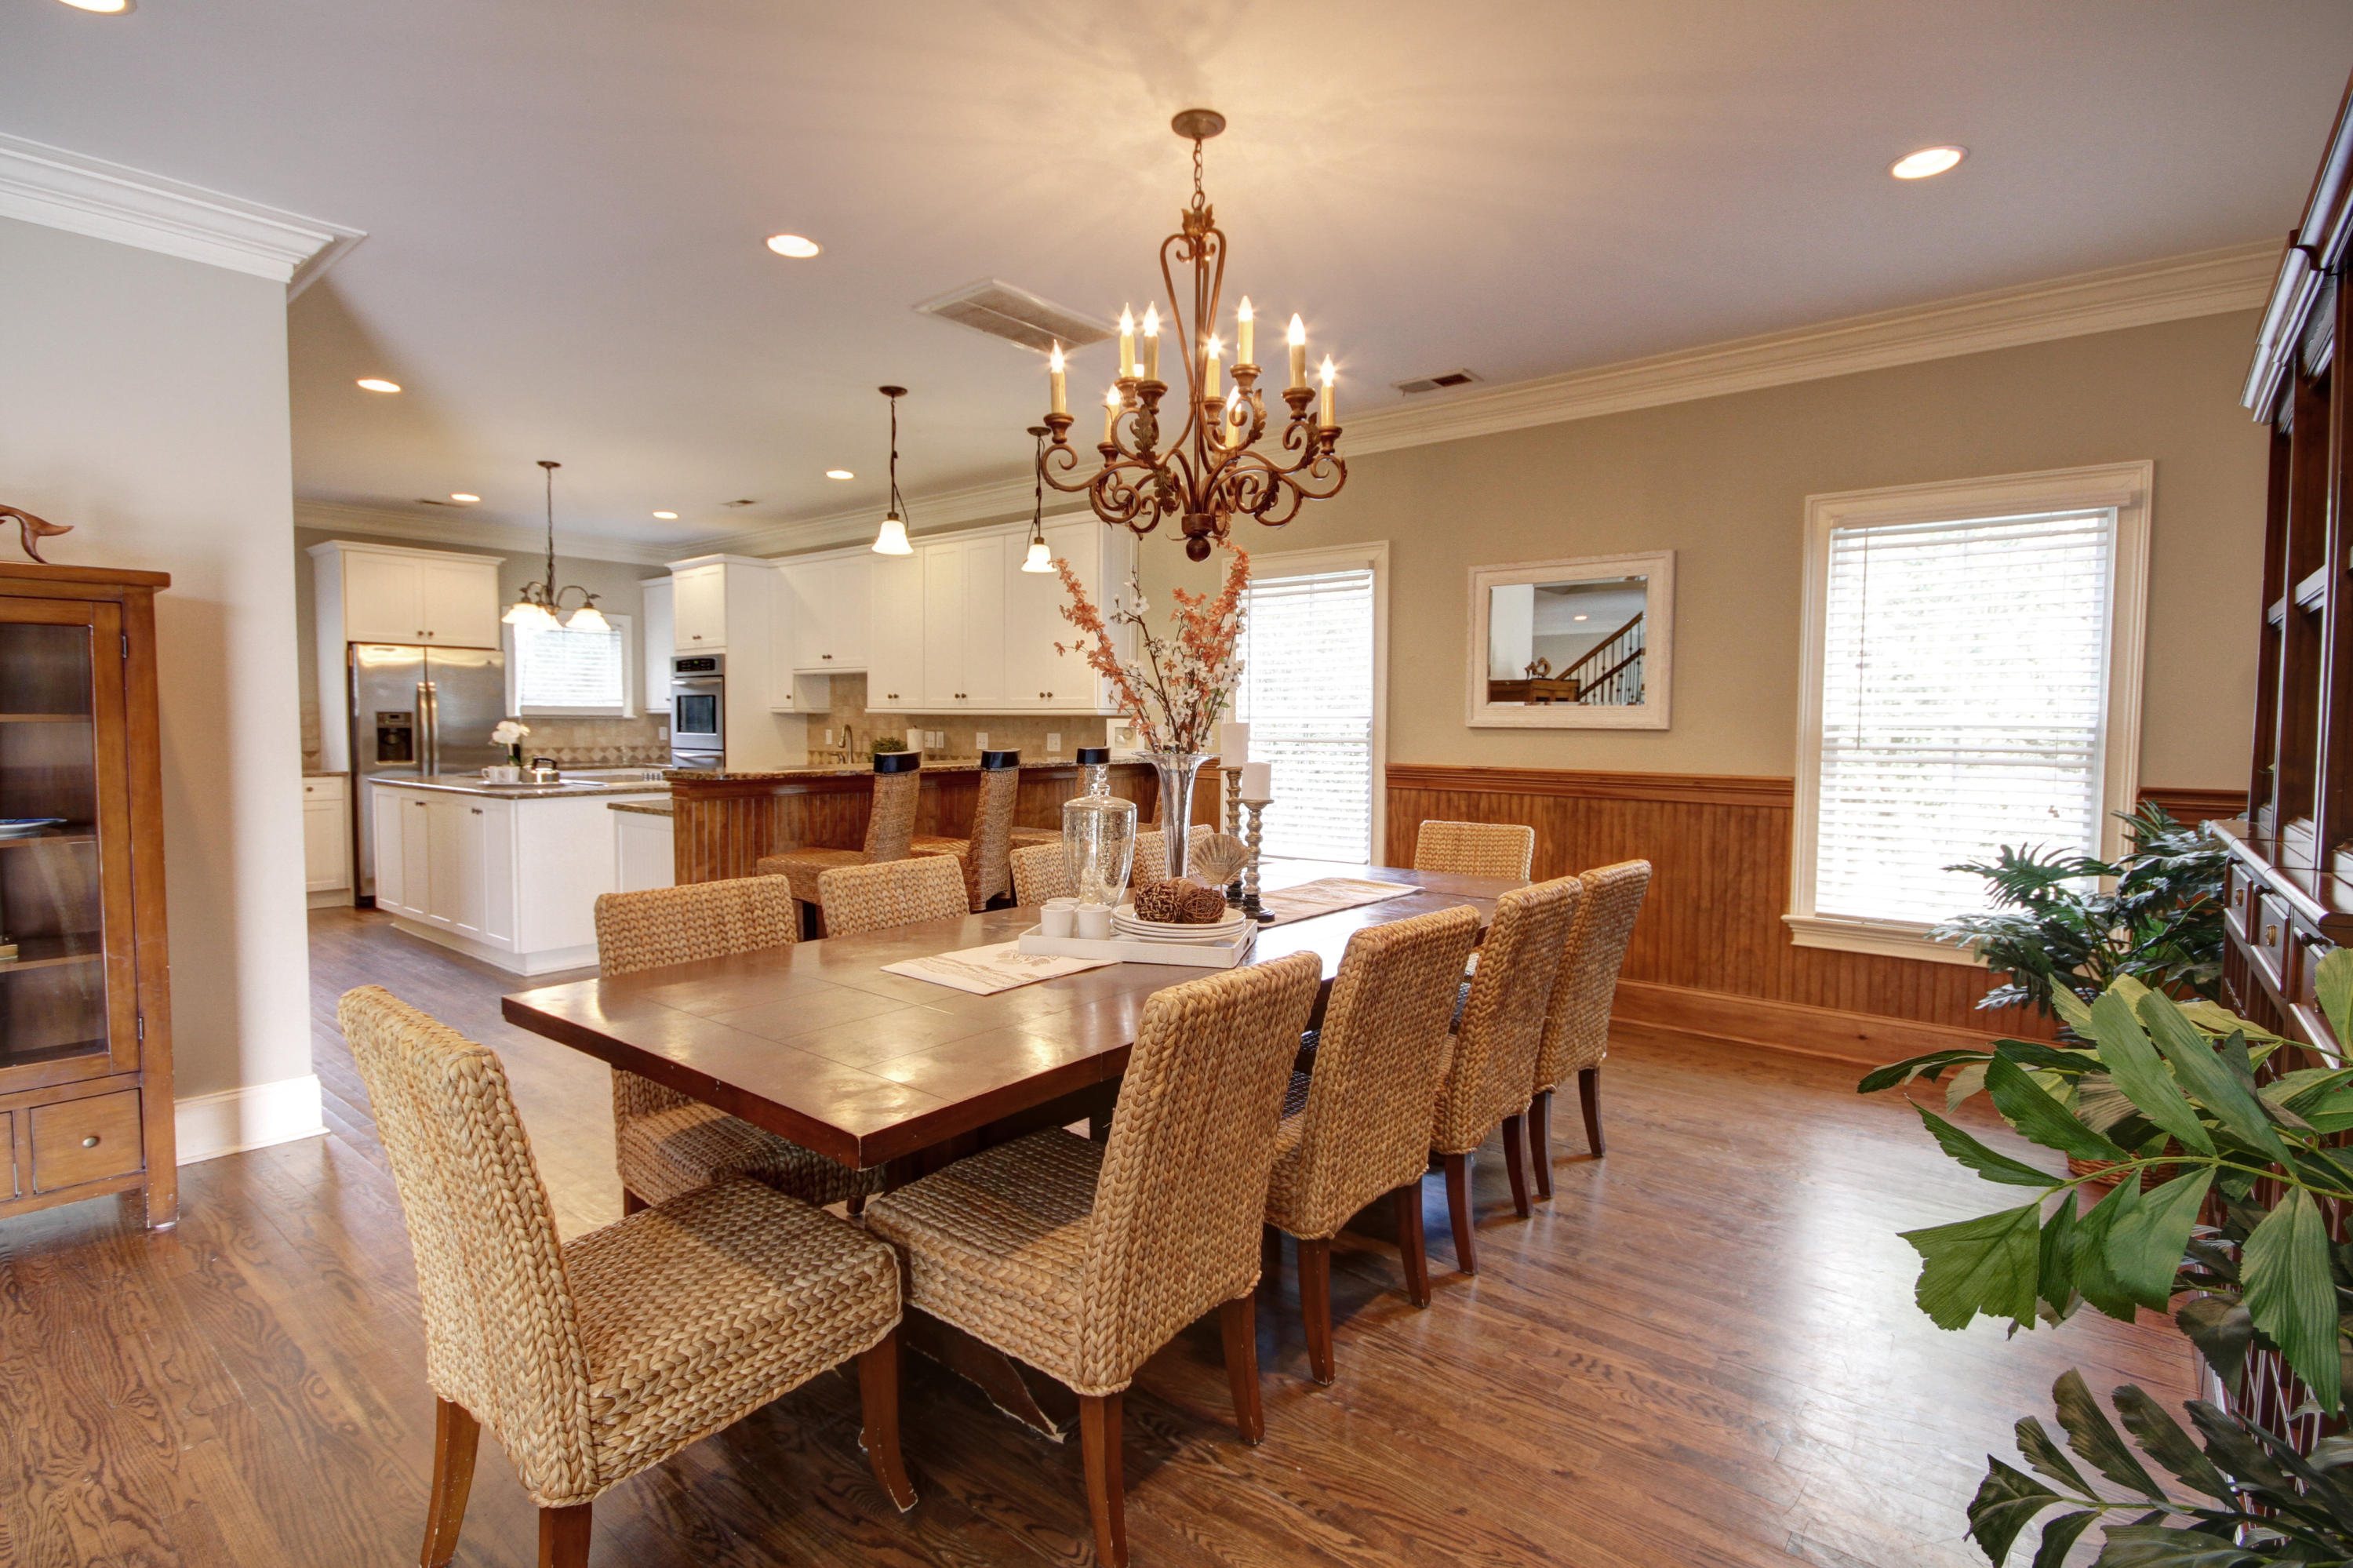 Wild Dunes Homes For Sale - 7 Abalone, Isle of Palms, SC - 1